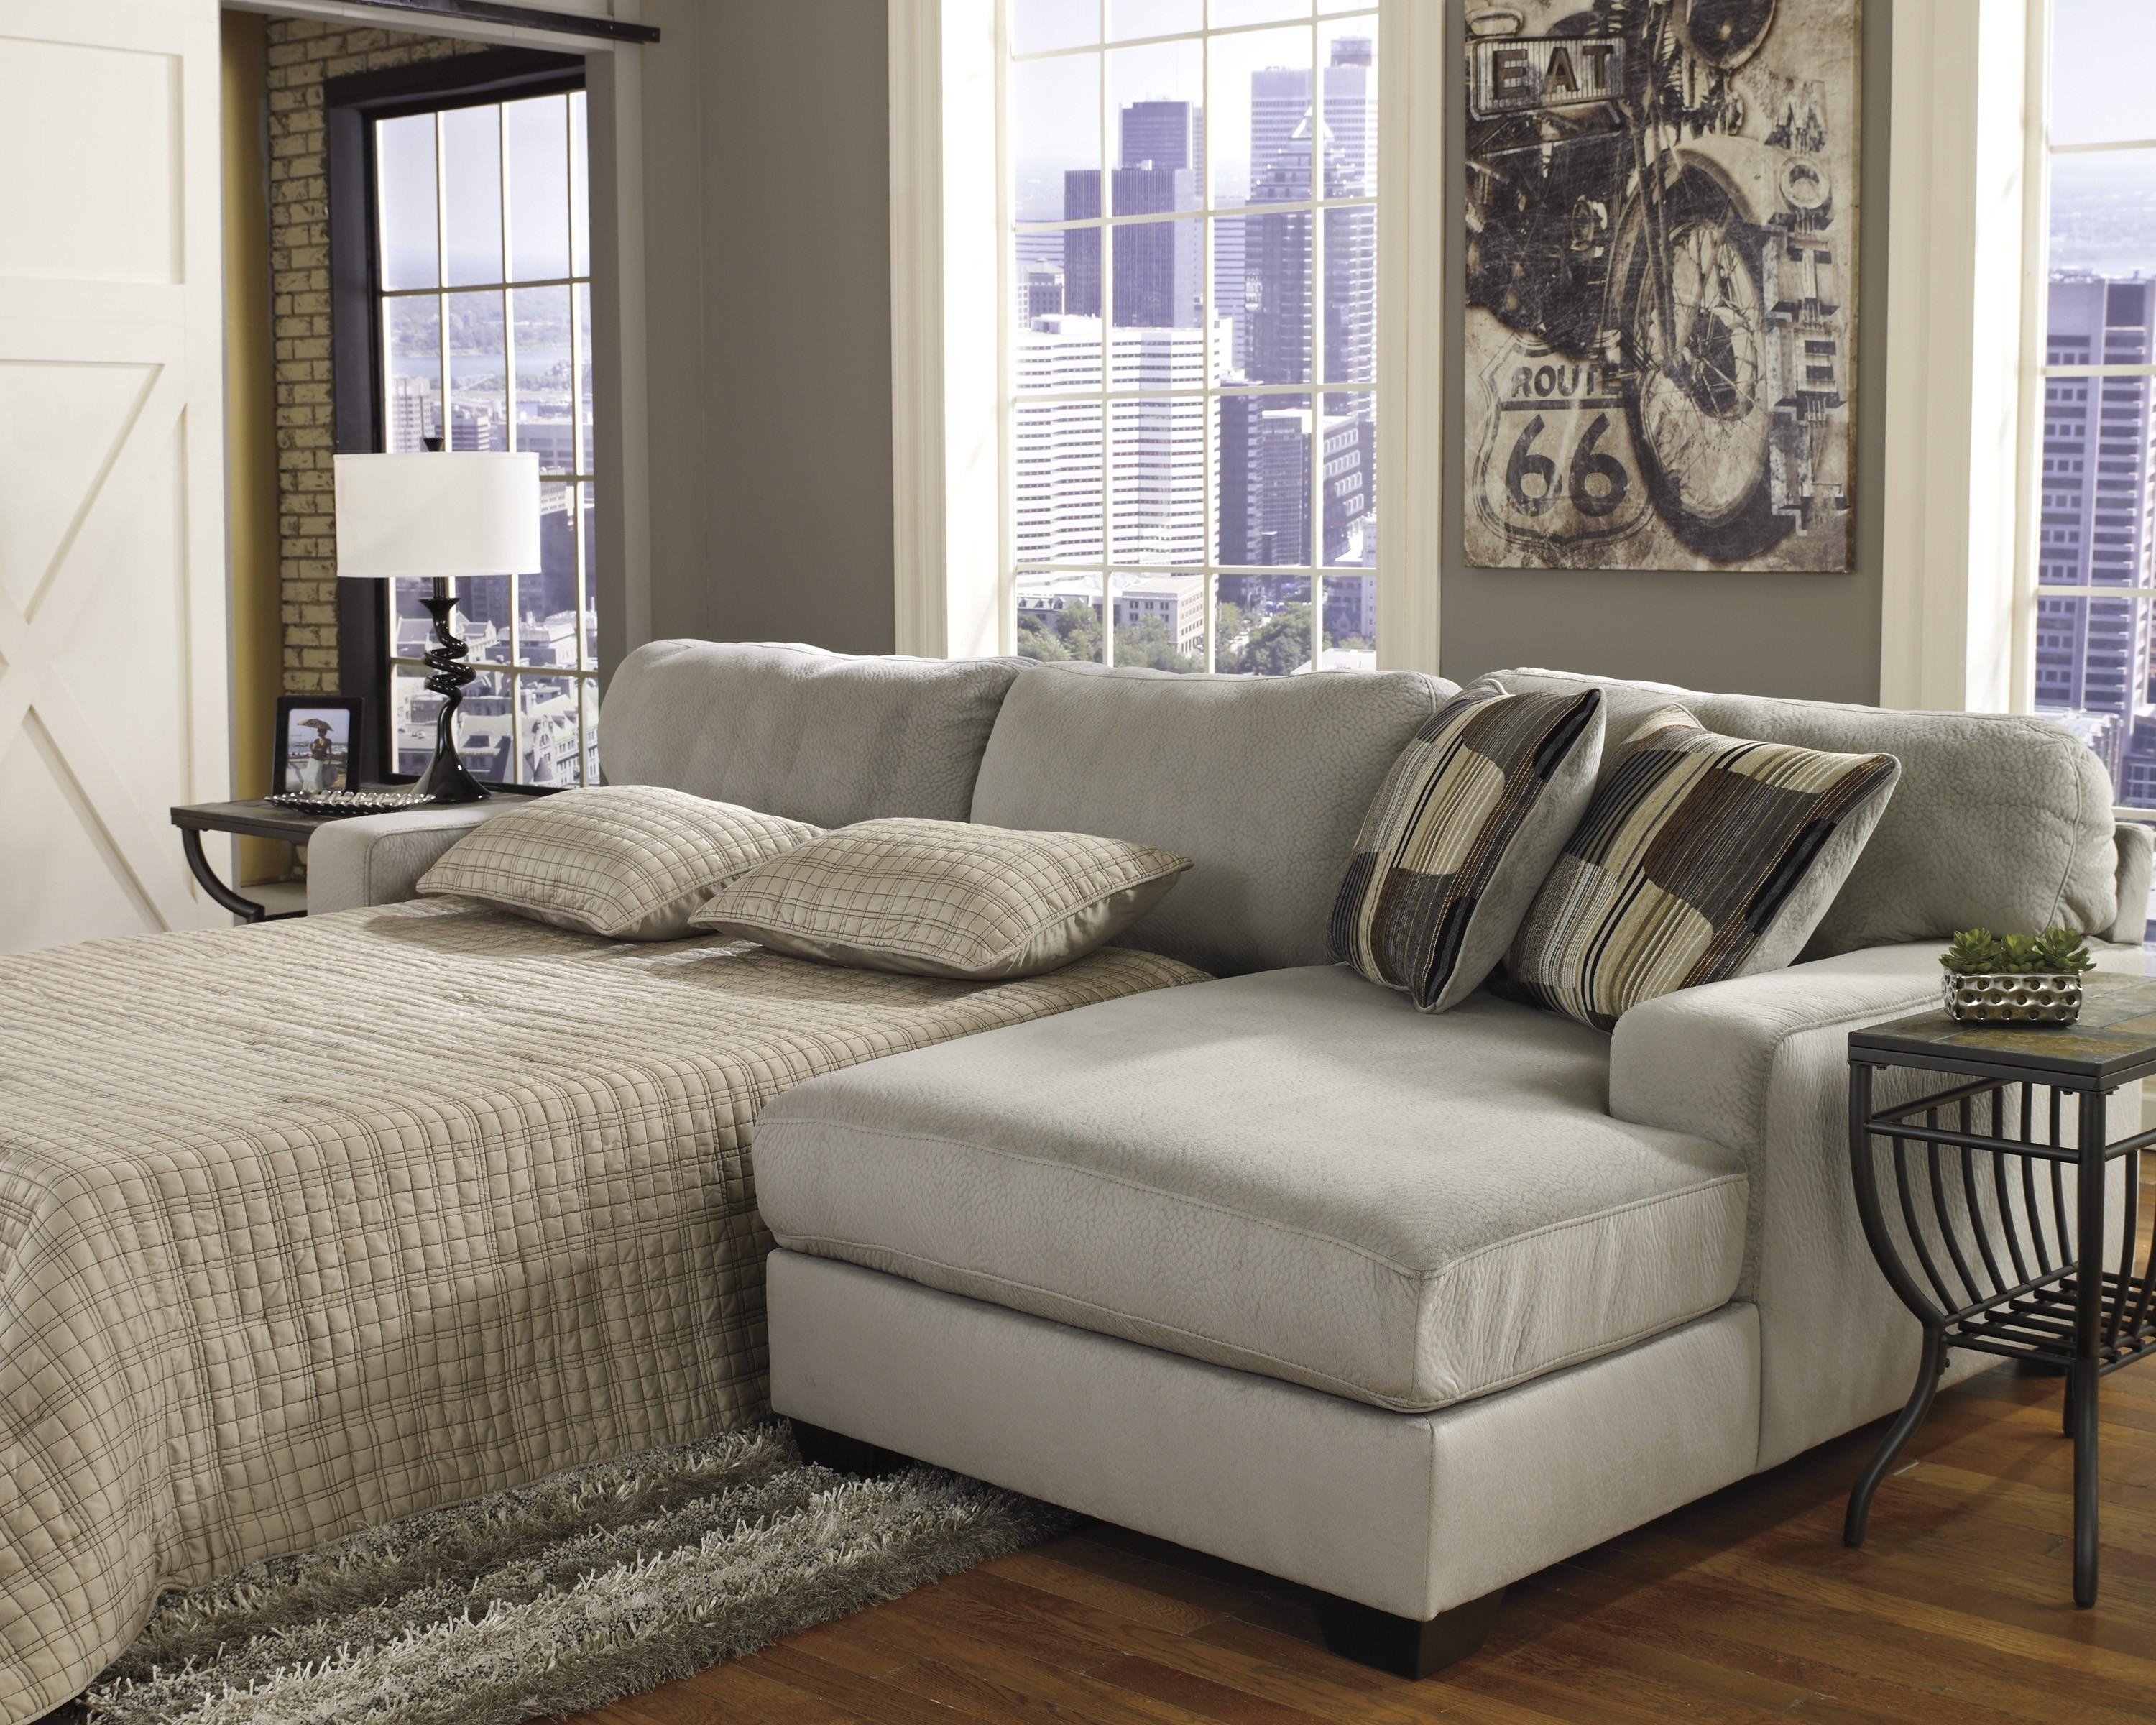 Sectional Sleeper Sofas With Chaise | Tehranmix Decoration For Sleeper Recliner Sectional (View 14 of 20)